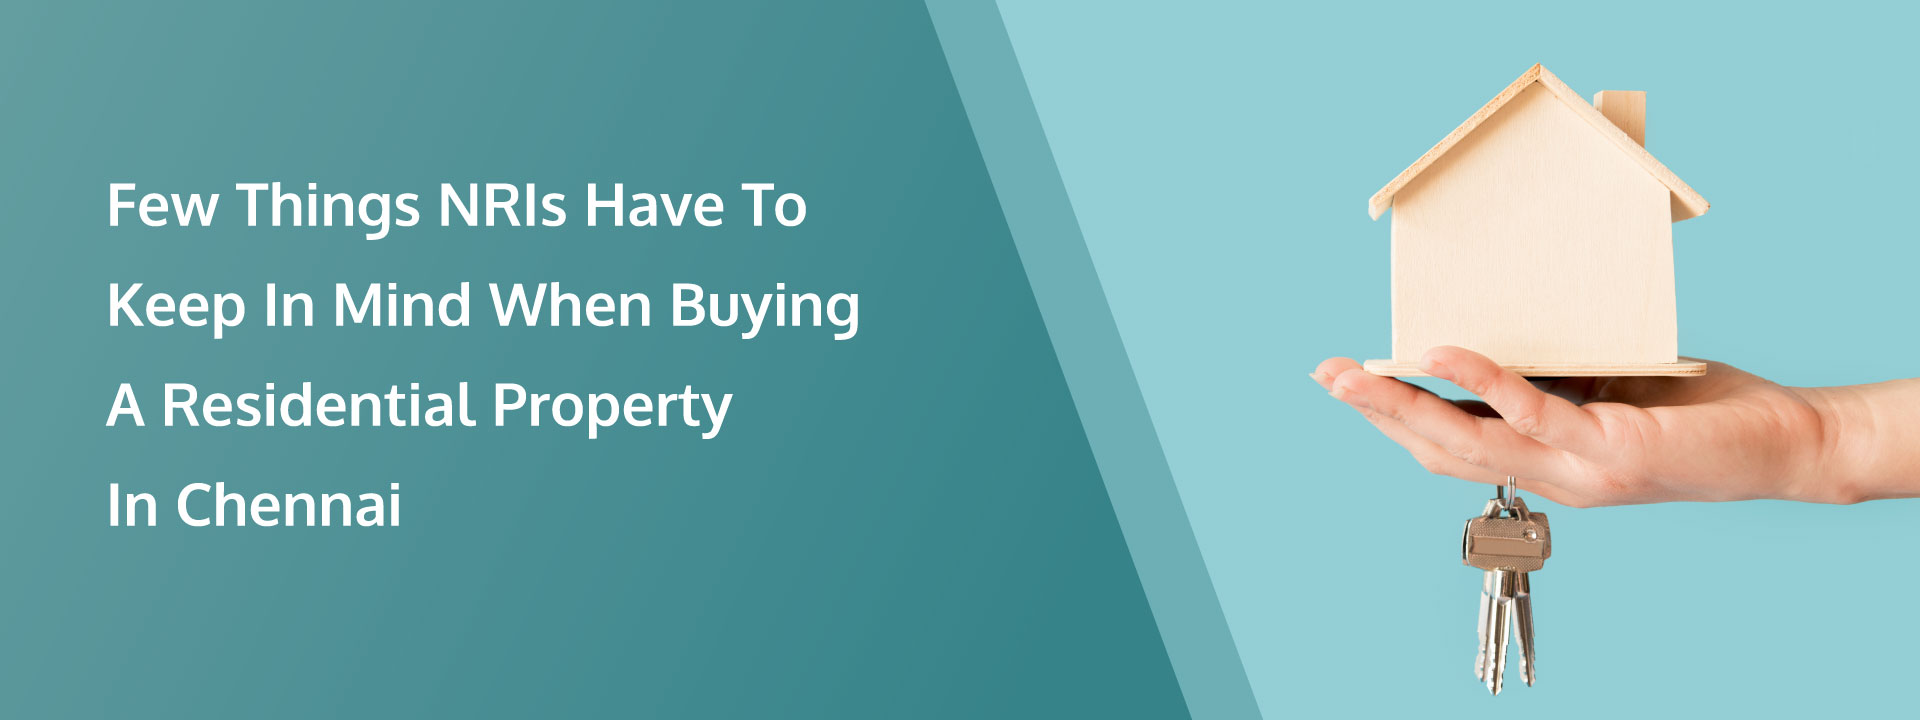 Few Things NRIs Have To Keep In Mind When Buying A Residential Property In Chennai